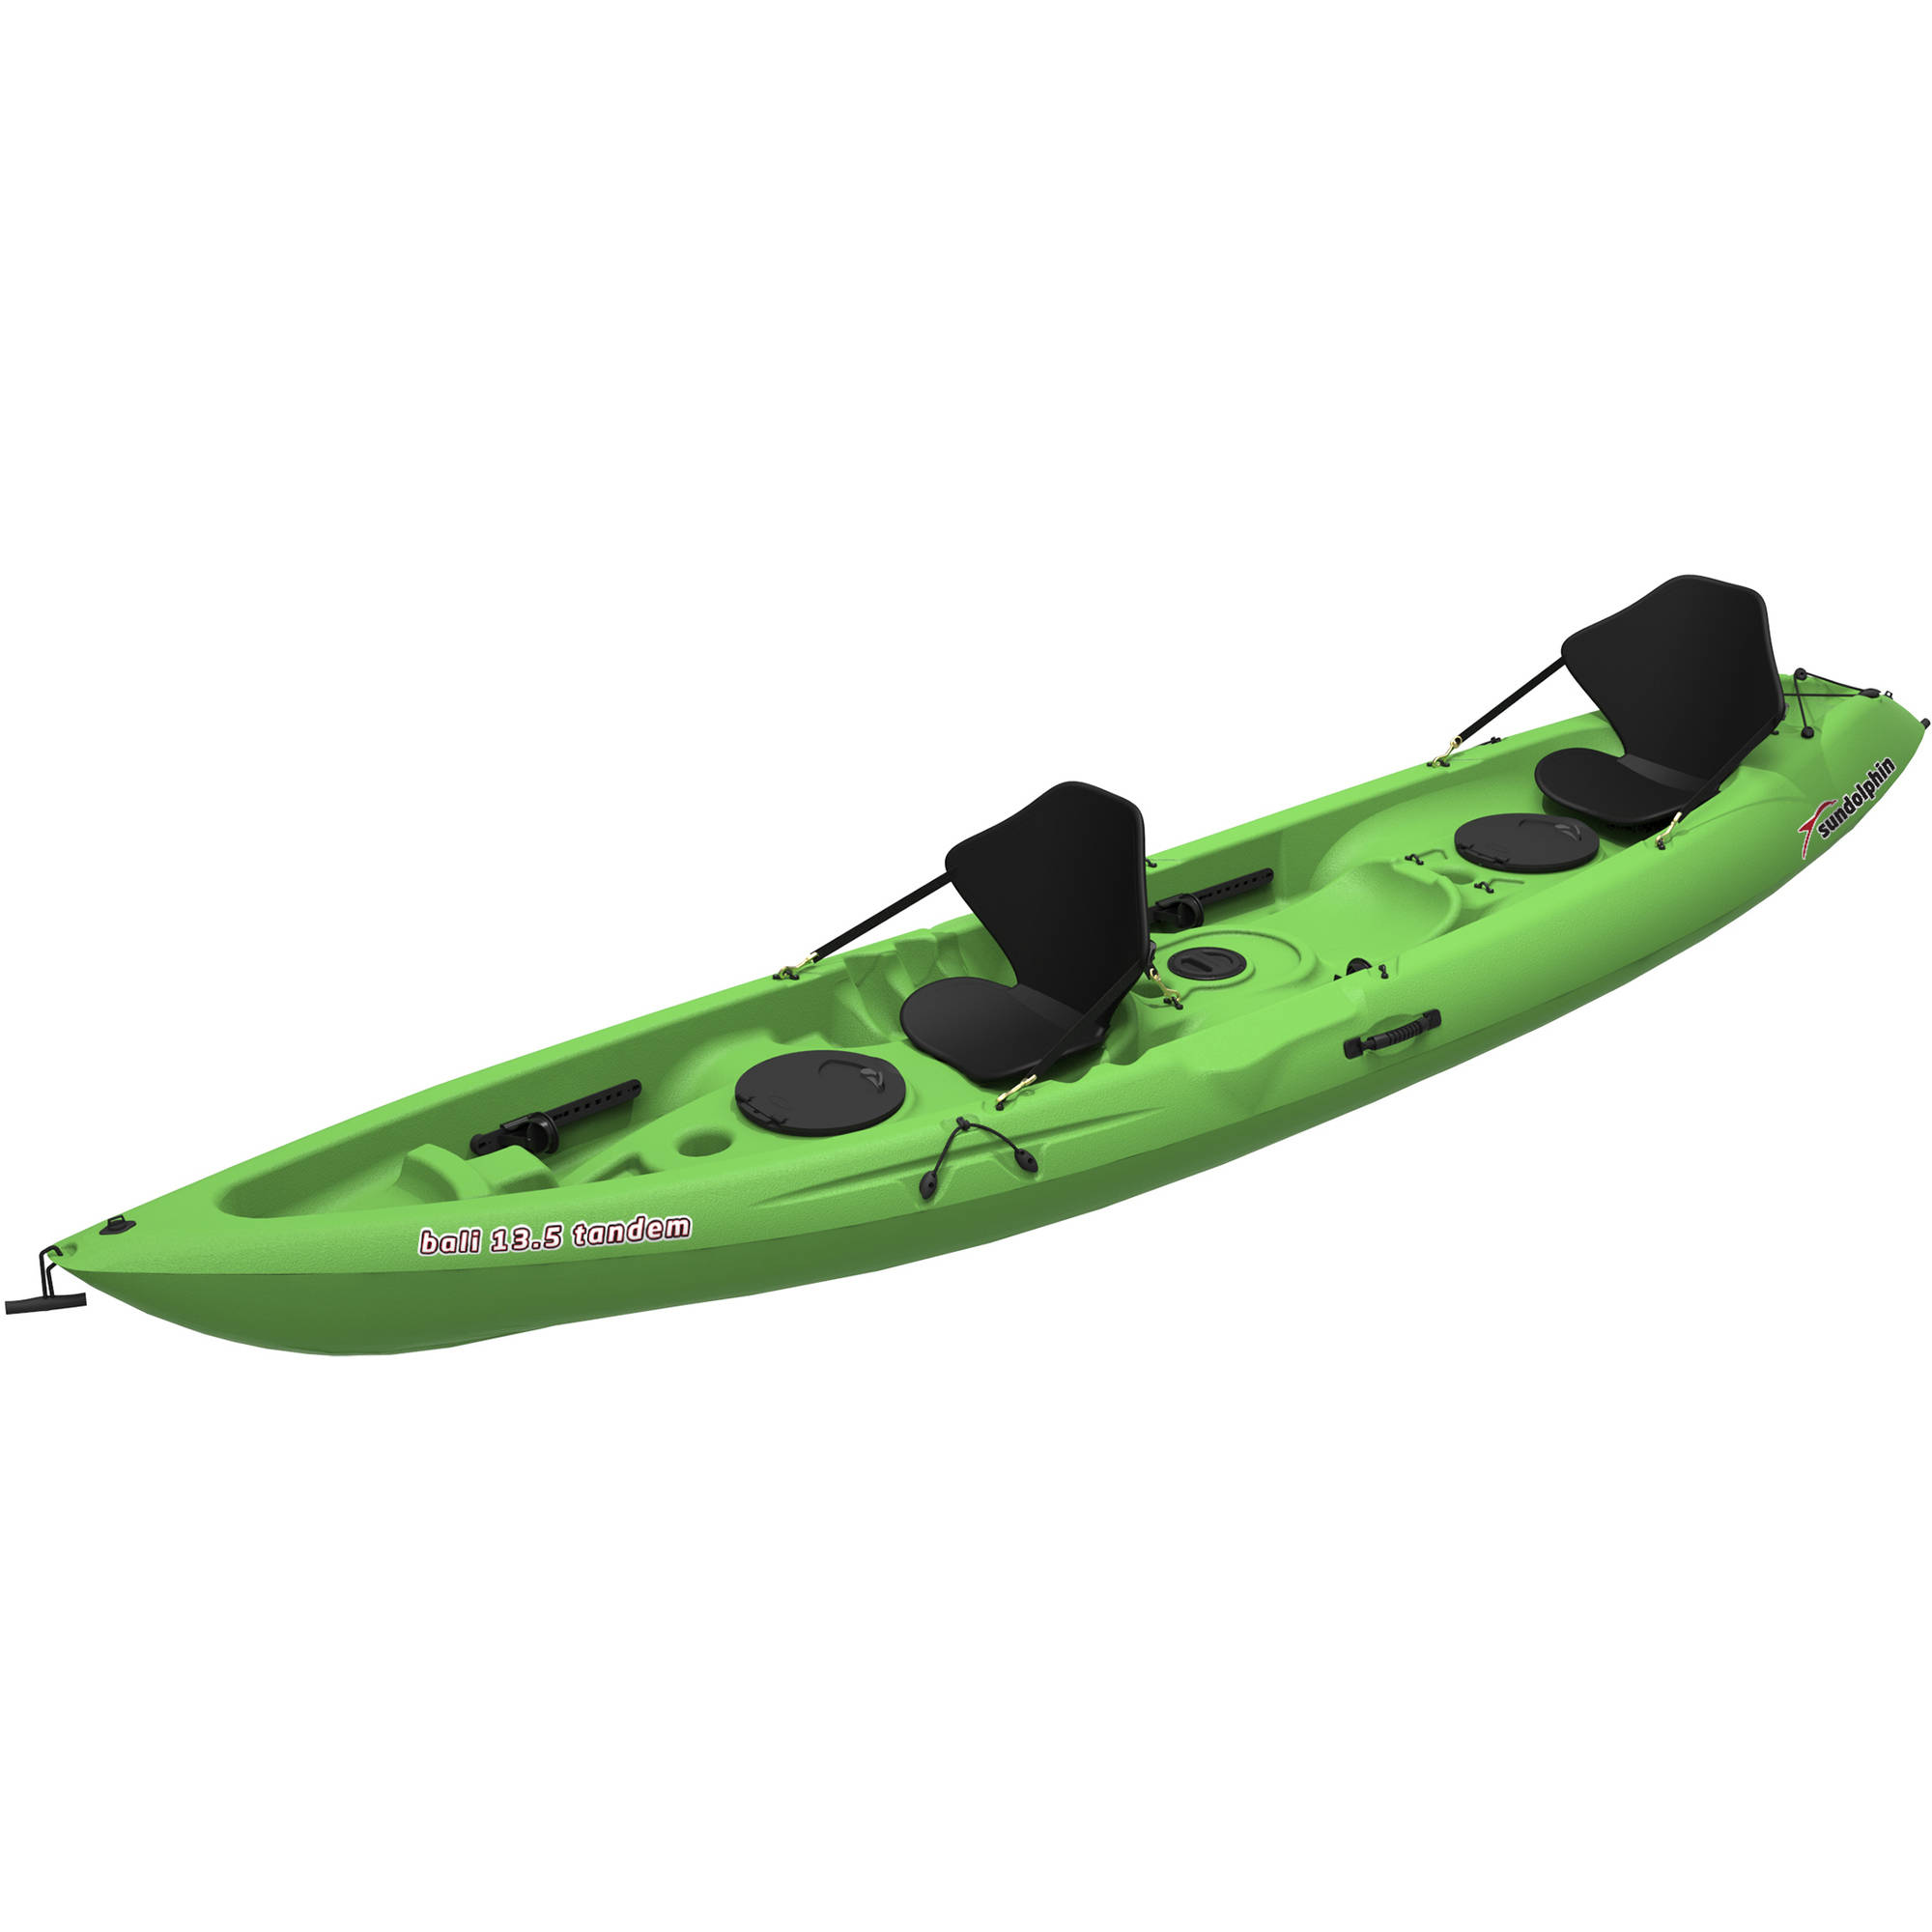 Best-Tandem-Kayak-For-Kids-600x400 Sun Dolphin Bali Kayak